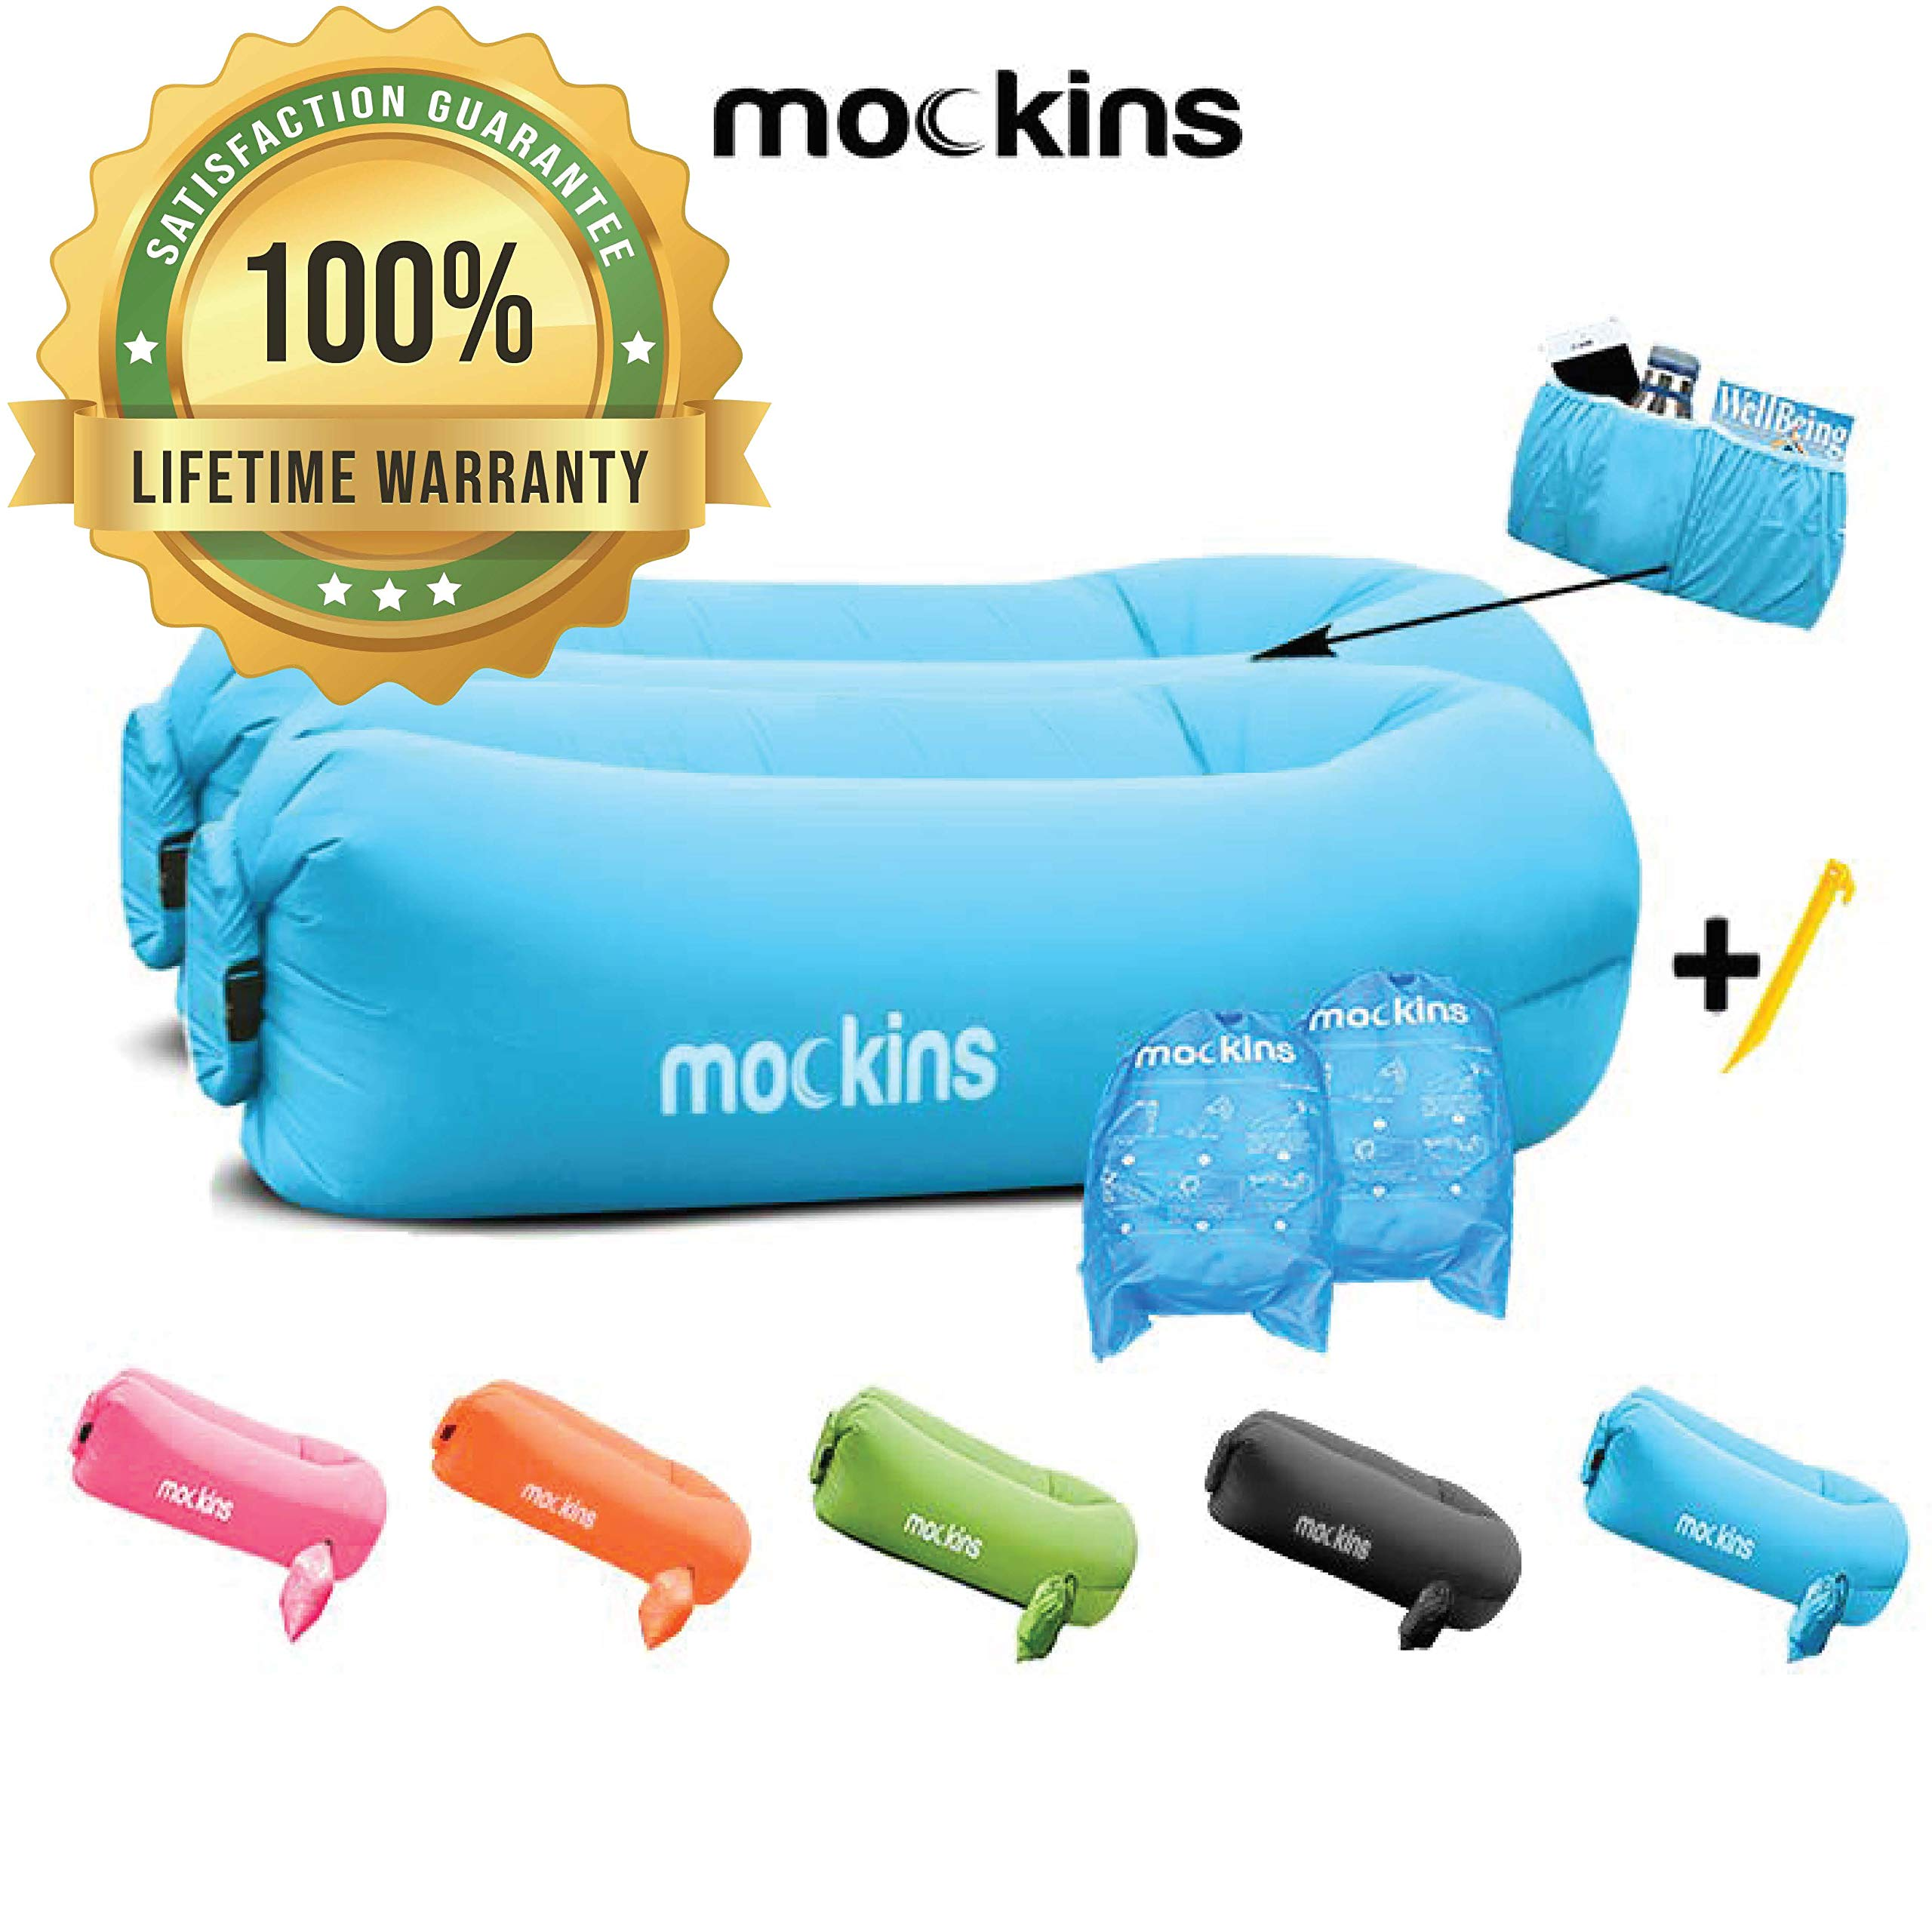 Mockins 2 Pack Blue Inflatable Lounger Hangout Sofa Bed with Travel Bag Pouch The Portable Inflatable Couch Air Lounger is Perfect for Music Festivals and Camping Accessories Inflatable Hammock ... ... ... by Mockins